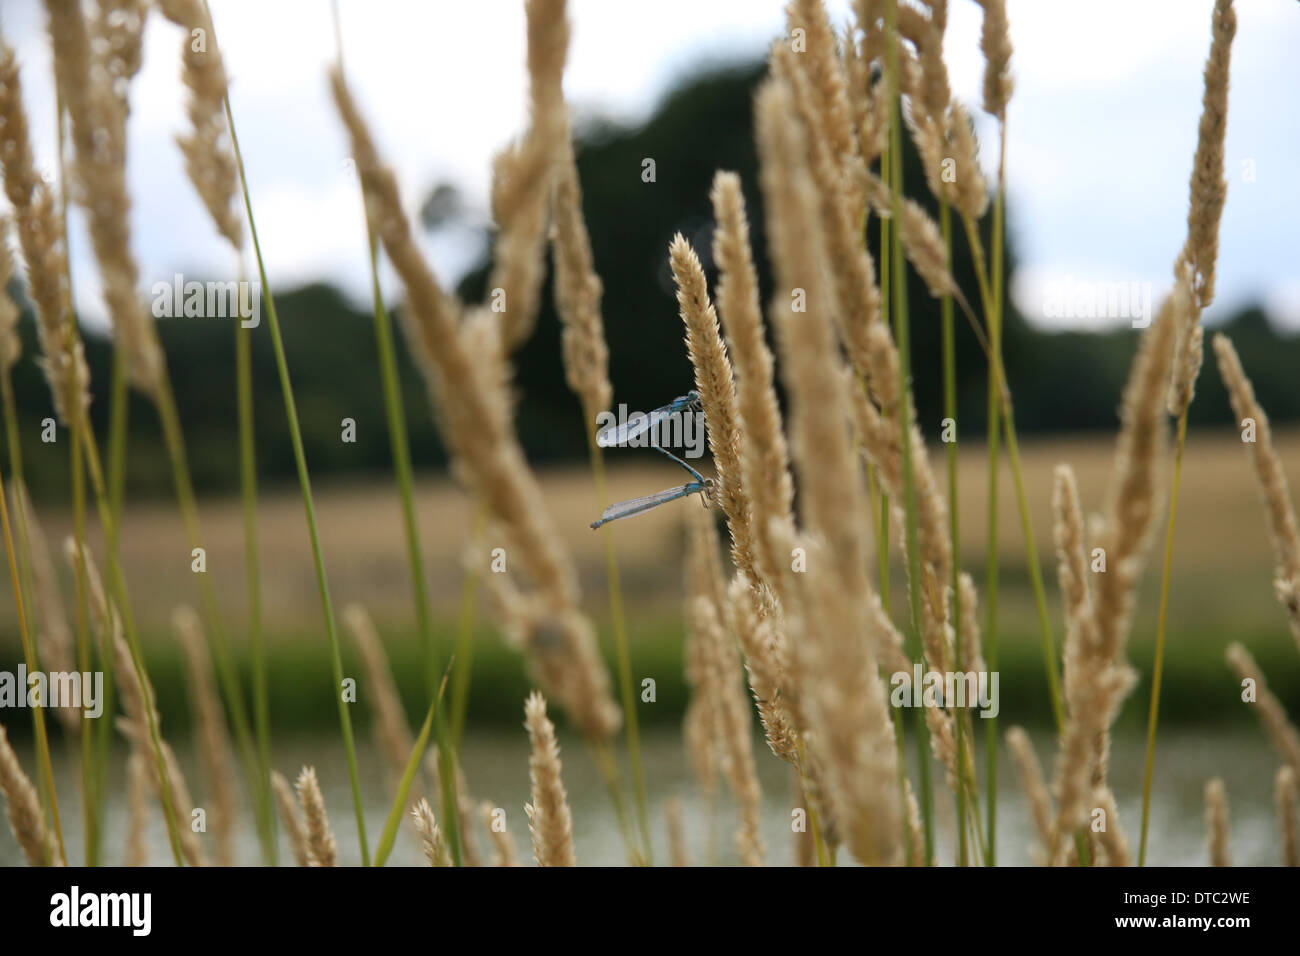 Dragonflies on grasses - Stock Image